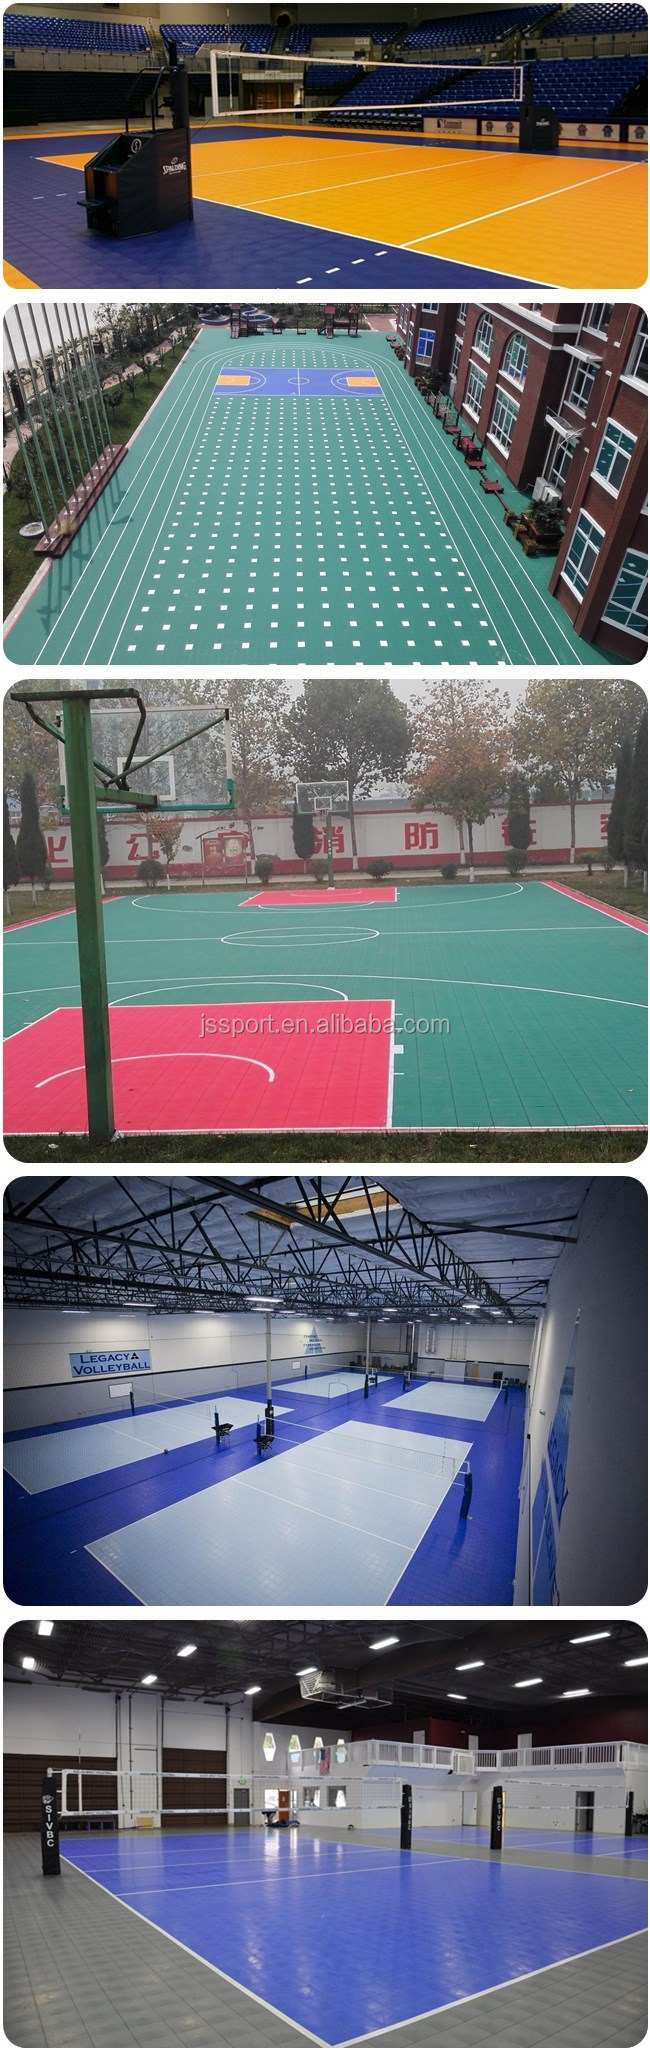 Recycled Environmental Portable Basketball Court Sports